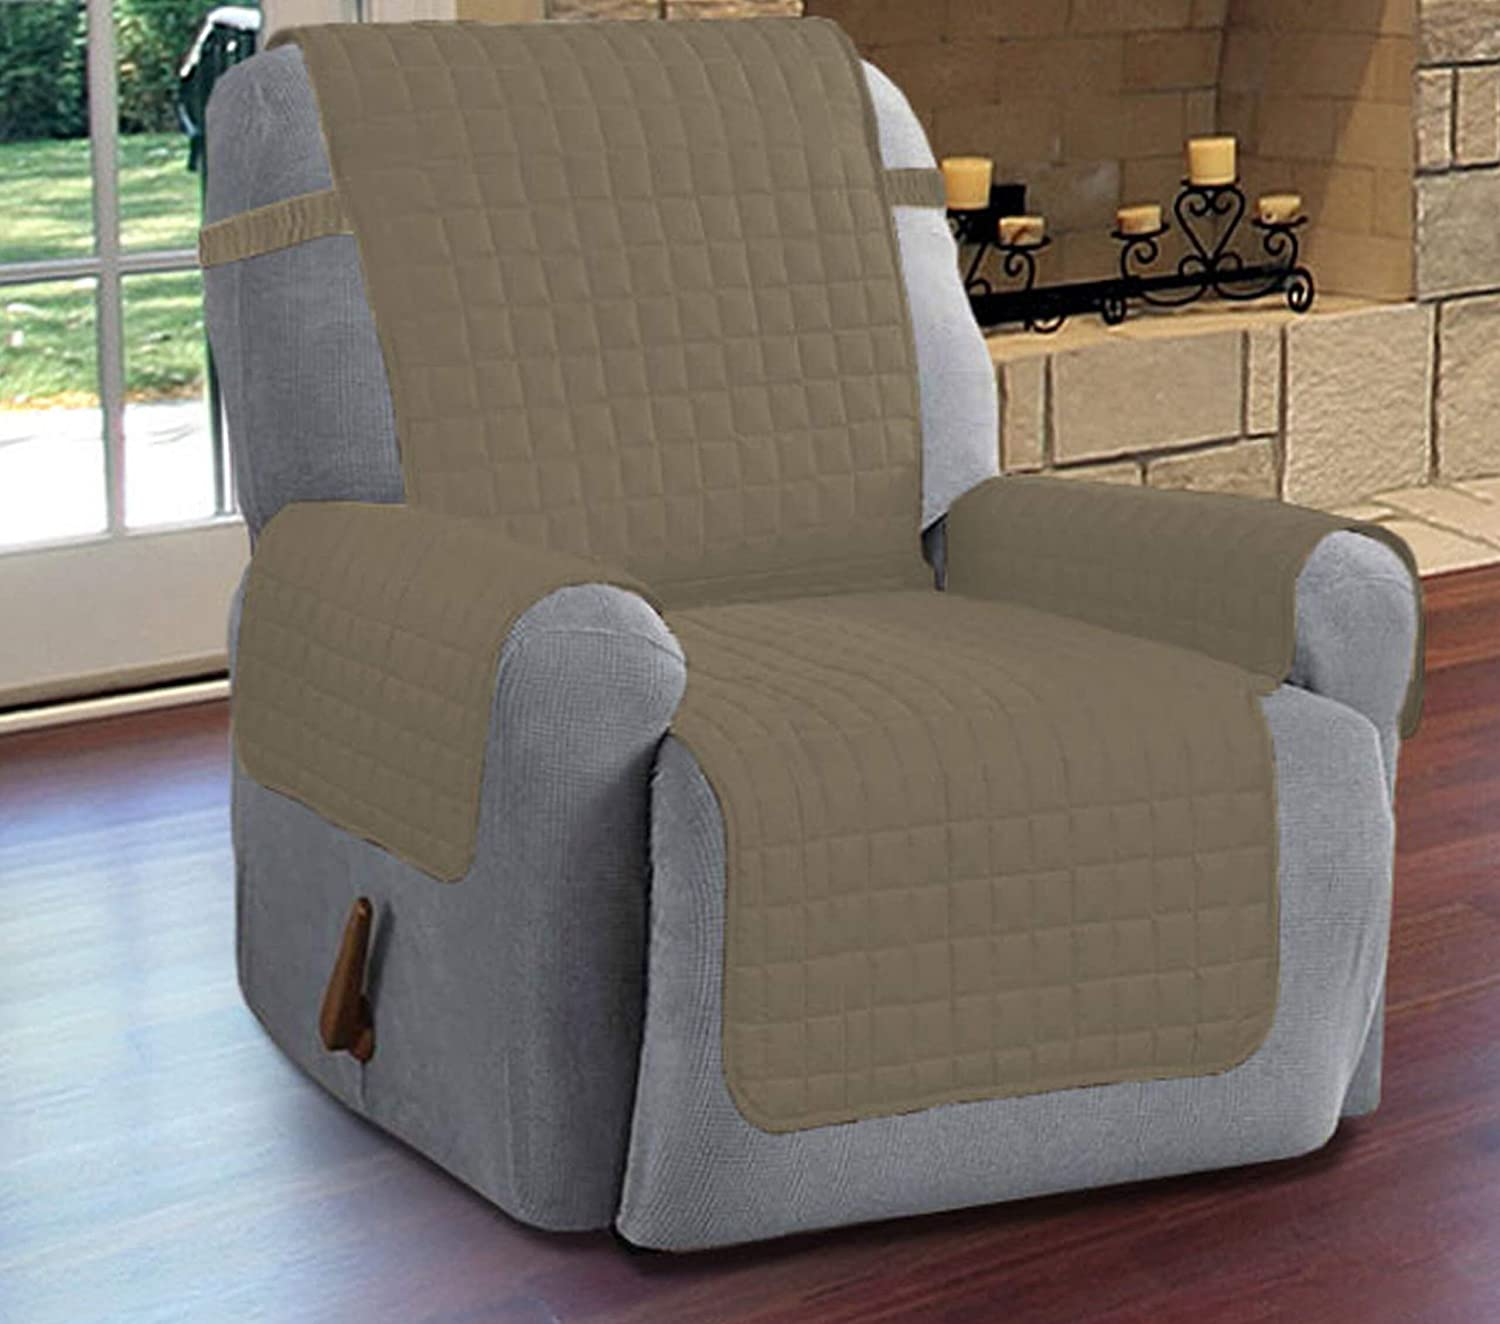 Linen Store Quilted Microfiber Slipcover Recliner Furniture Protector with Adjustable Straps Machine Washable Perfect for Pets & Children